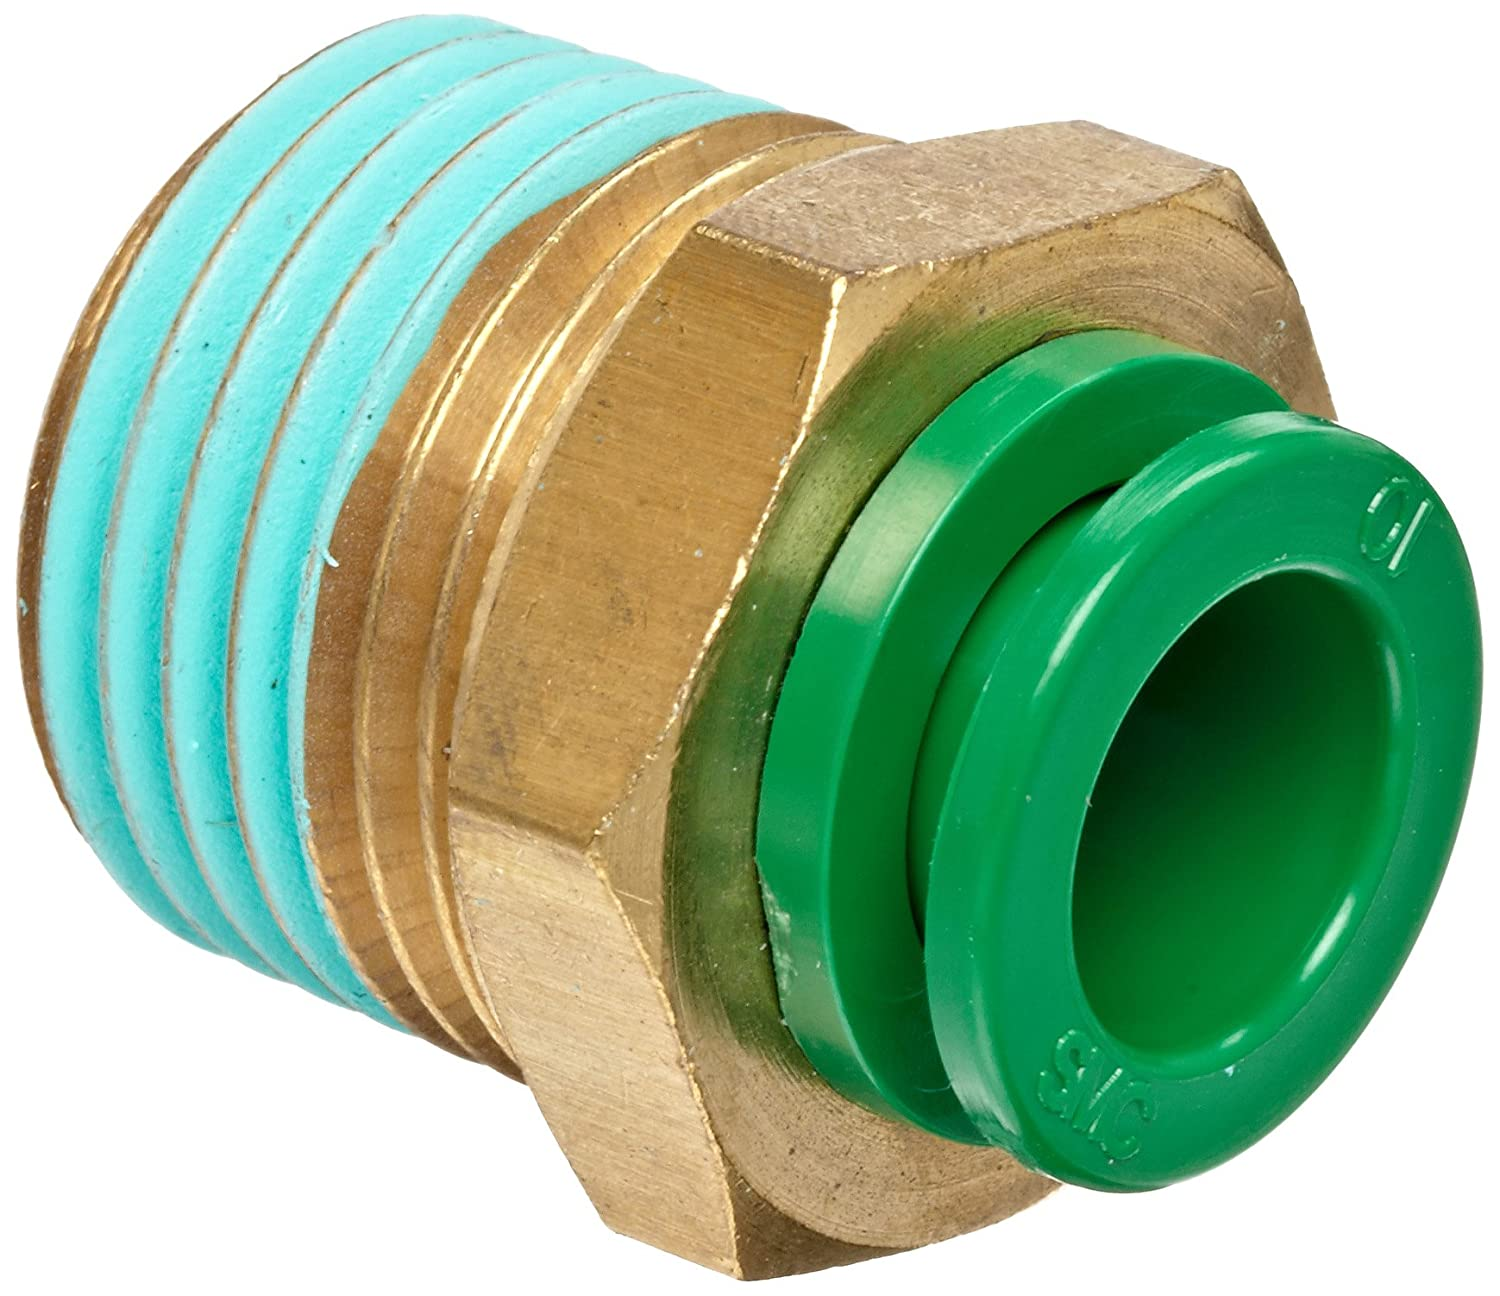 Smc Kr Series Brass Flame Resistant Push To Connect Tube Fitting Wiring A Metal Plug Socket Free Download Diagrams Pictures Connector With Sealant 10mm Od X 1 4 Bspt Male Industrial Scientific